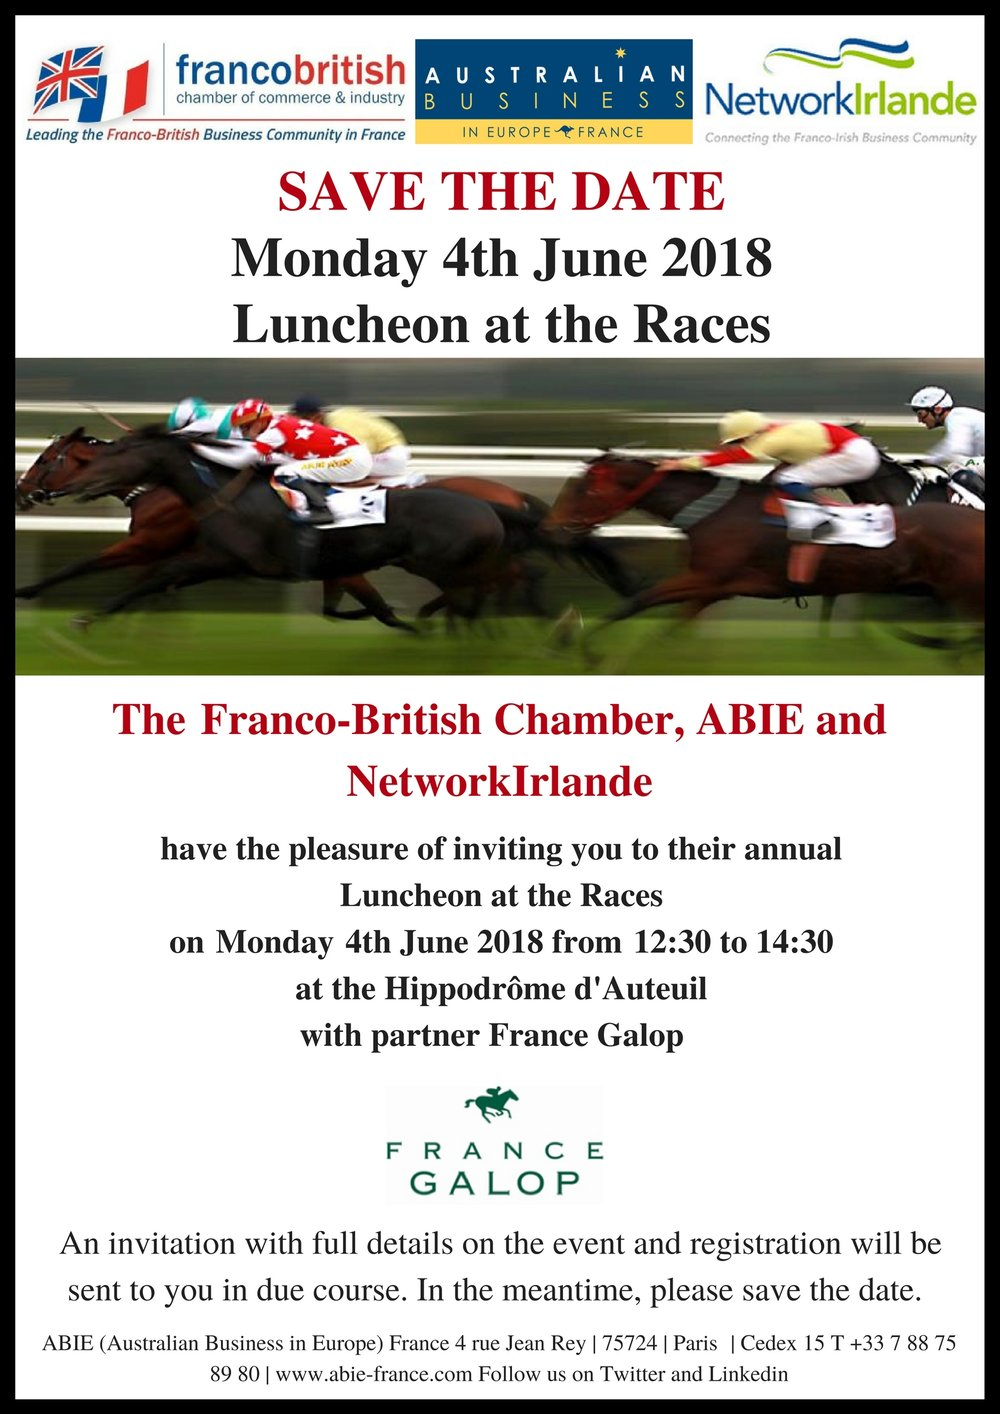 ABIE Lunch at the Races 04.06.2018 Save the Date.jpg